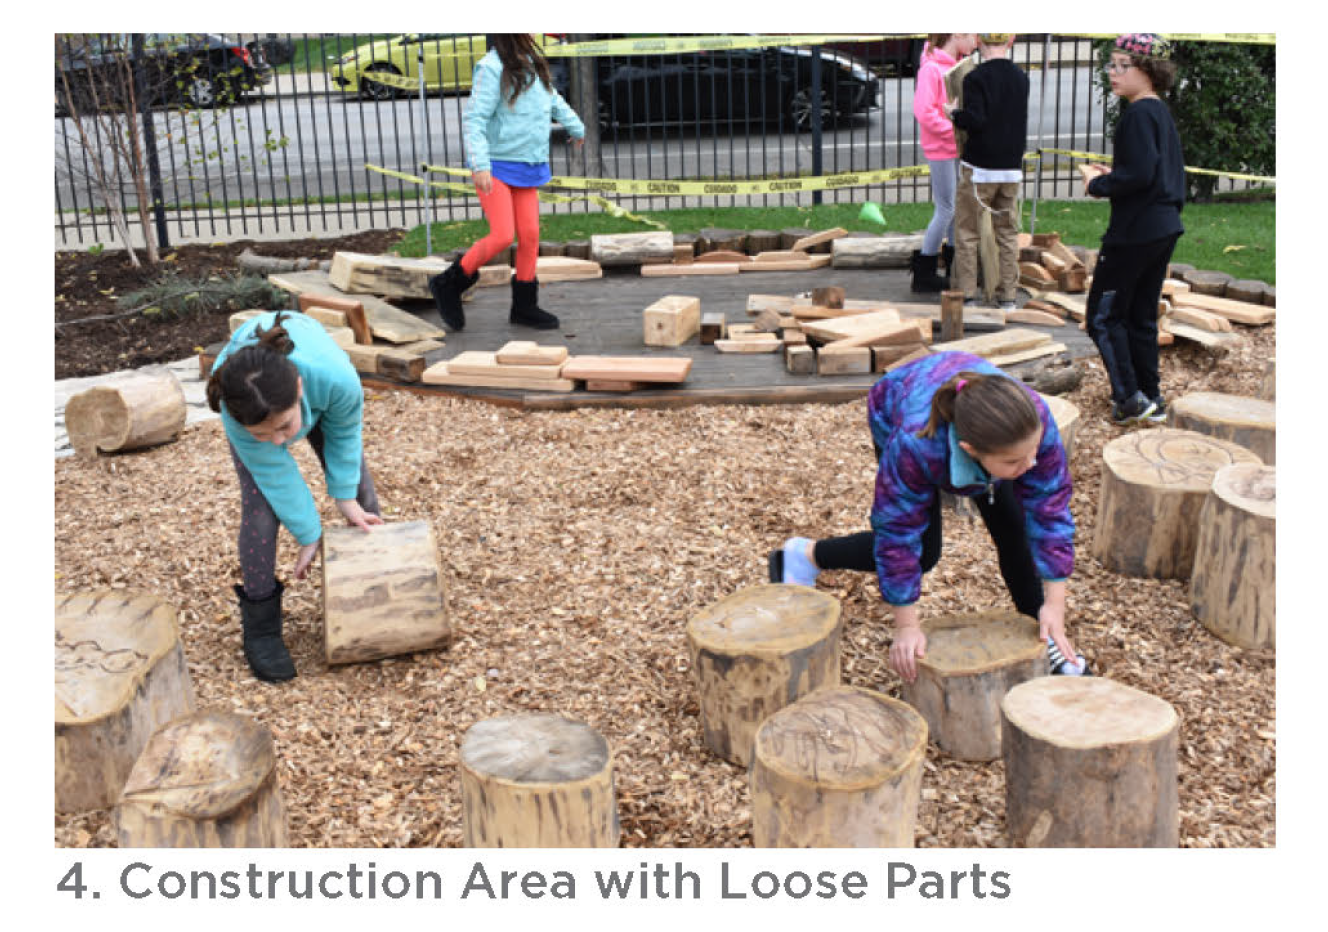 Photo of the construction area with loose parts.